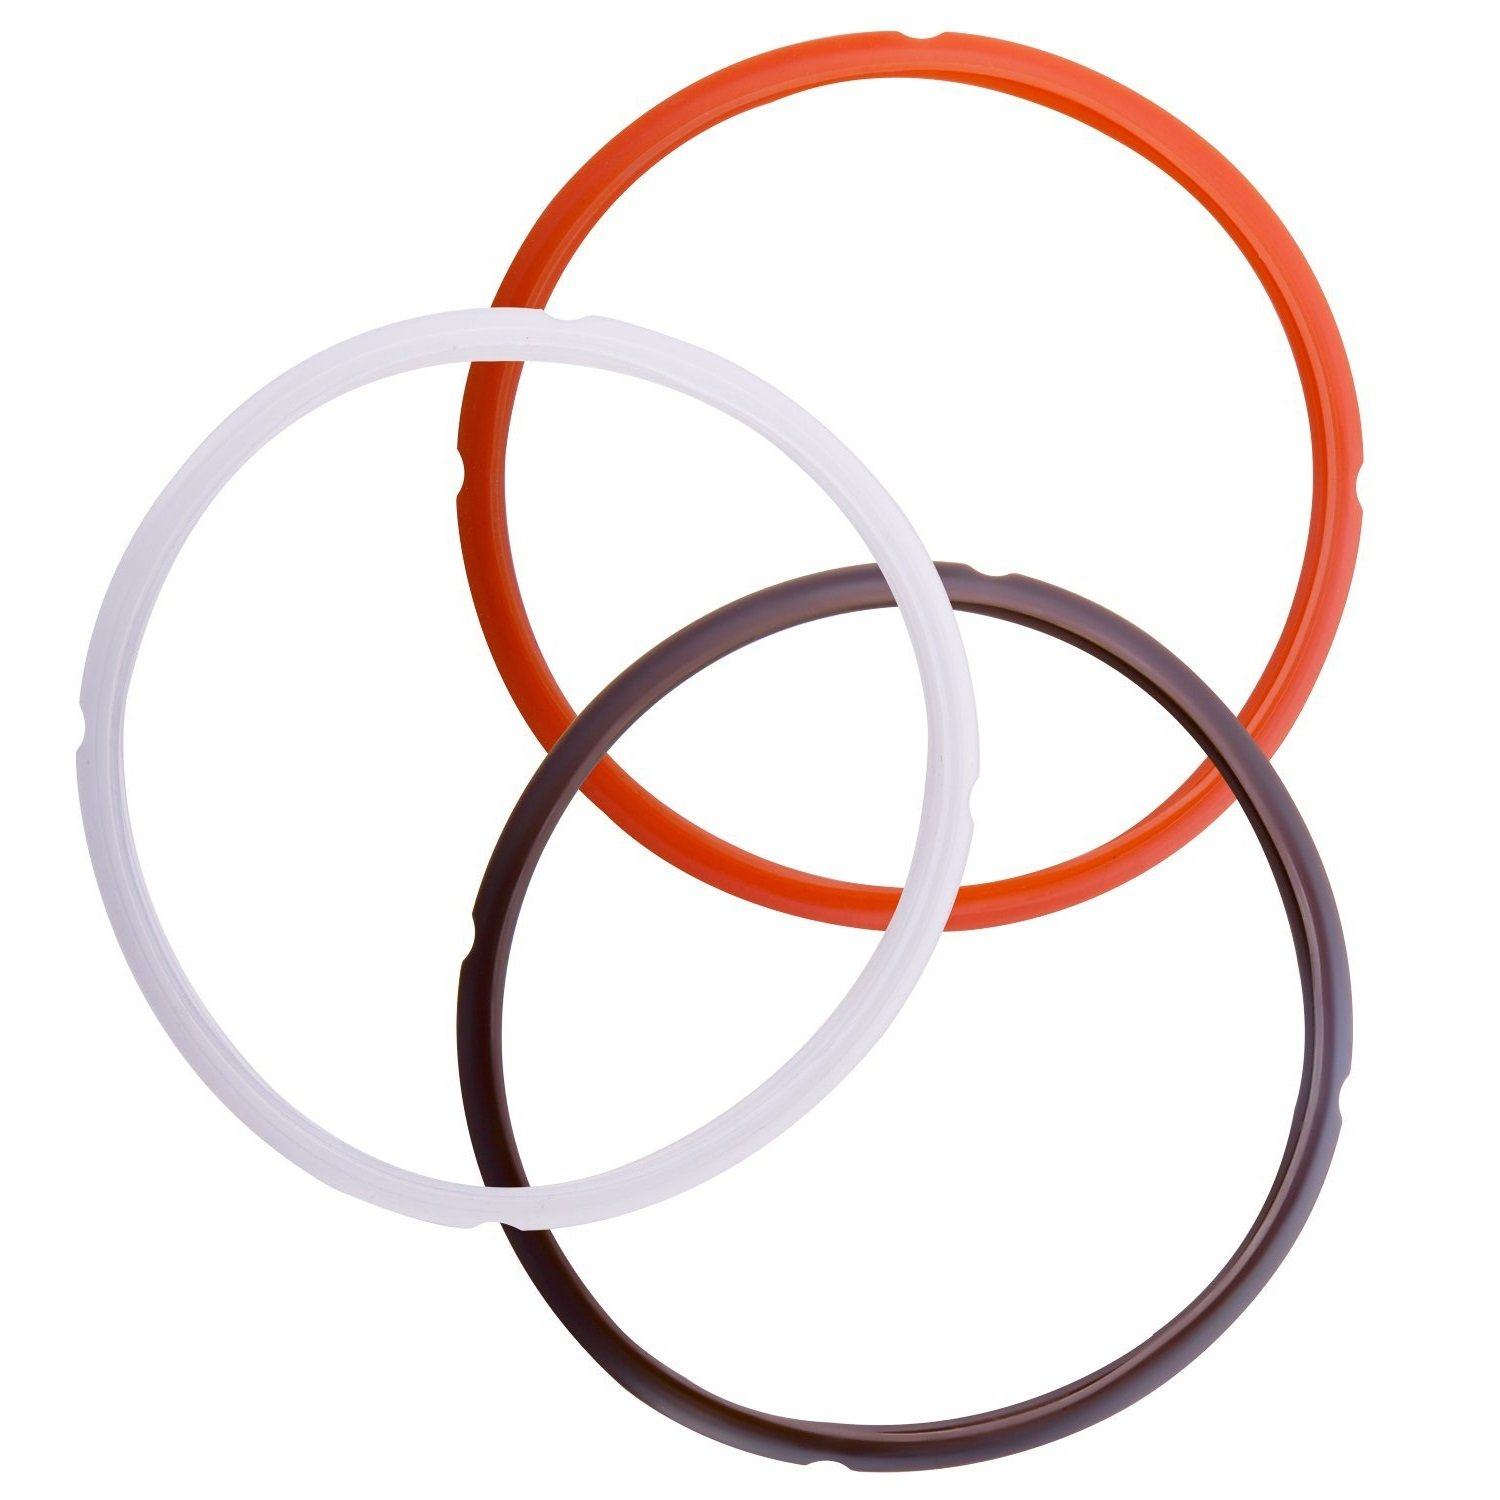 Pexils Kitchen(tm) Pot Instant Multi Cooker Silicone Sealing Ring Colorful Sweet n Savory Edition (3, Orange+Brown+Clear)